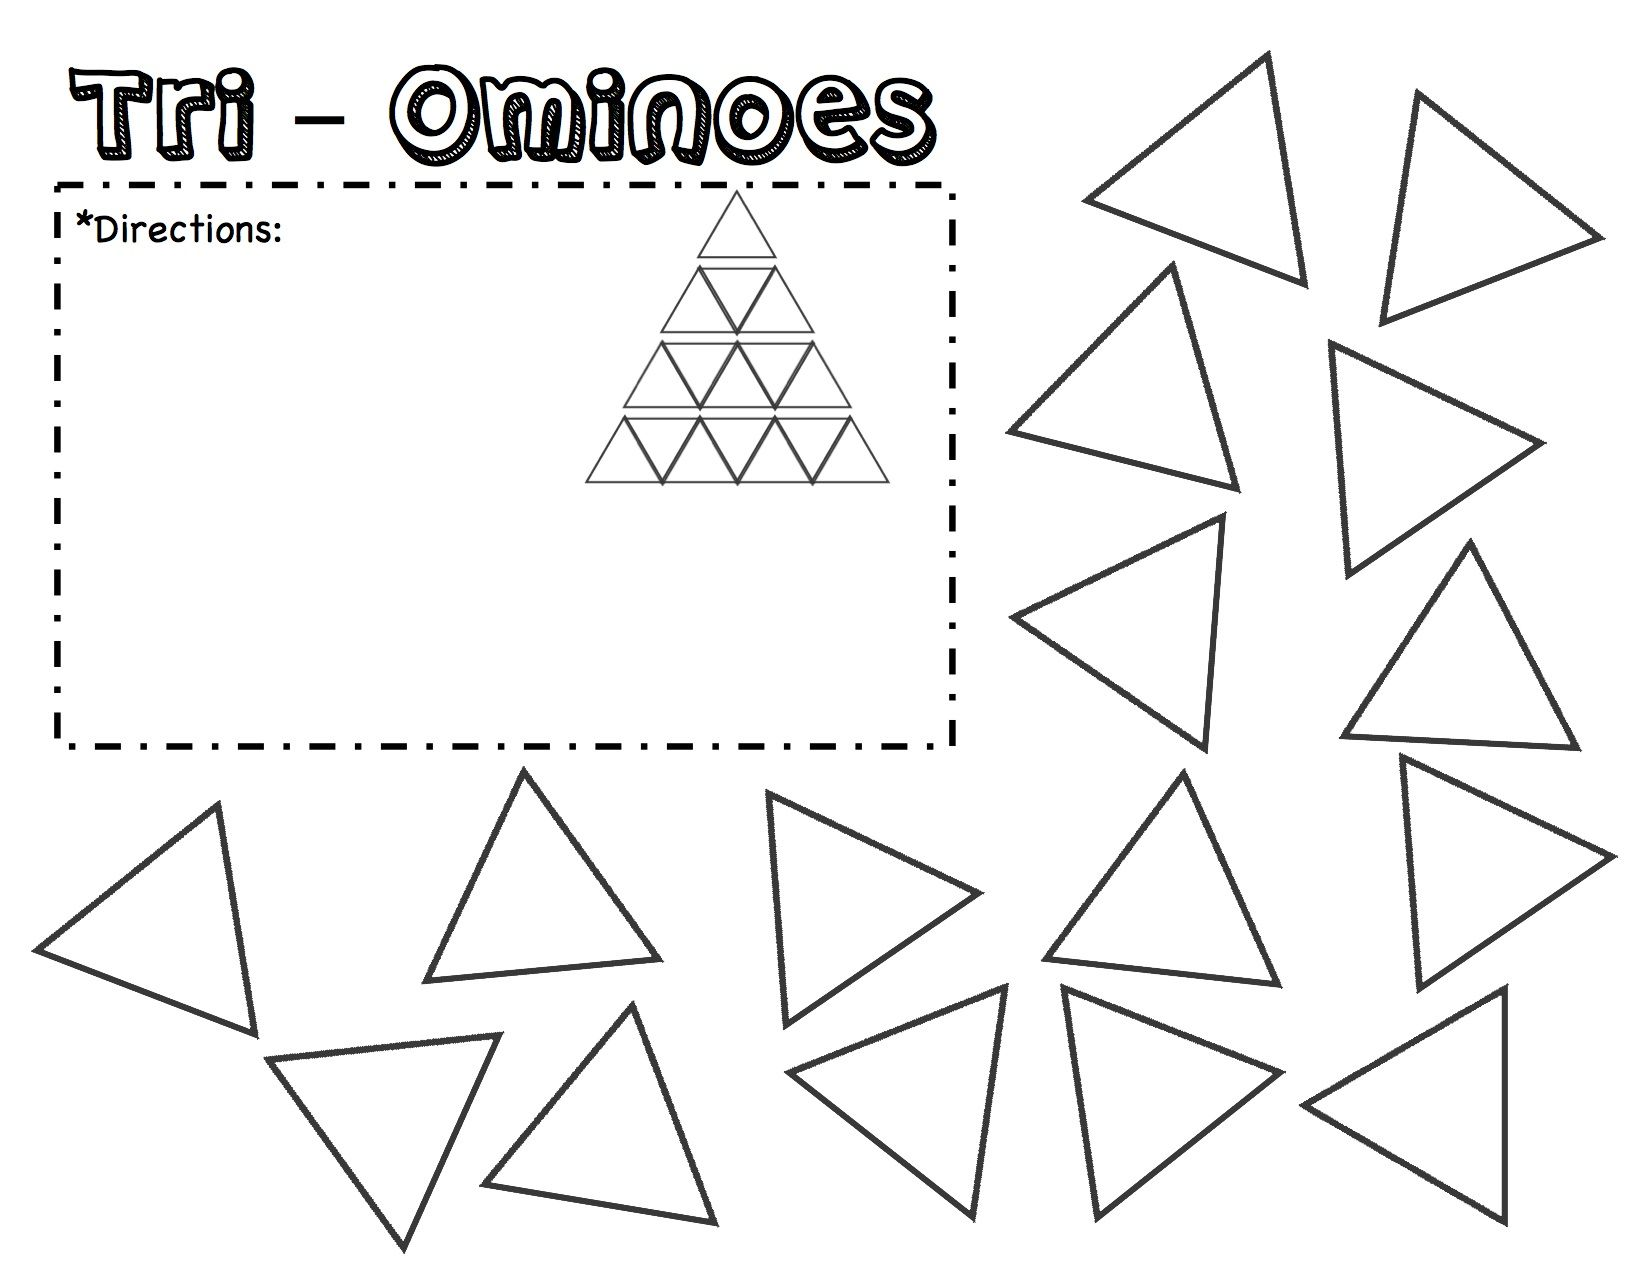 Tri Ominoes Puzzle Template Printable Fill In The Directions And Write In What You Want Them To